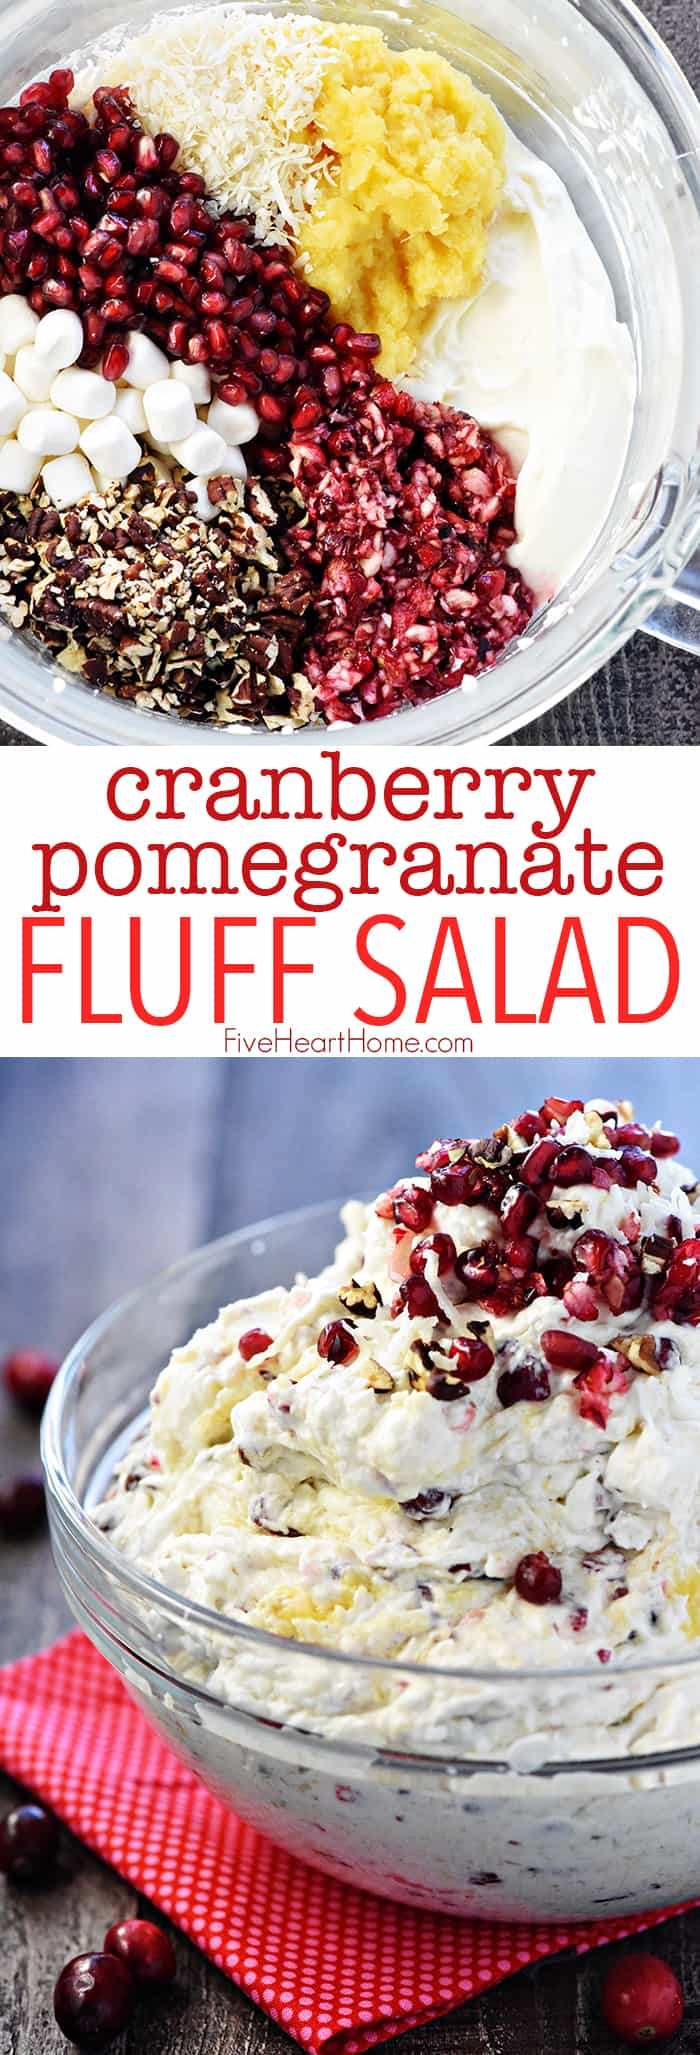 Cranberry Pomegranate Fluff Salad ~ a new twist on the classic recipe, loaded with tart cranberries, sweet pomegranate arils, crushed pineapple, toasty pecans, chewy coconut, fluffy marshmallows, and fresh whipped cream for a delicious holiday side dish! | FiveHeartHome.com